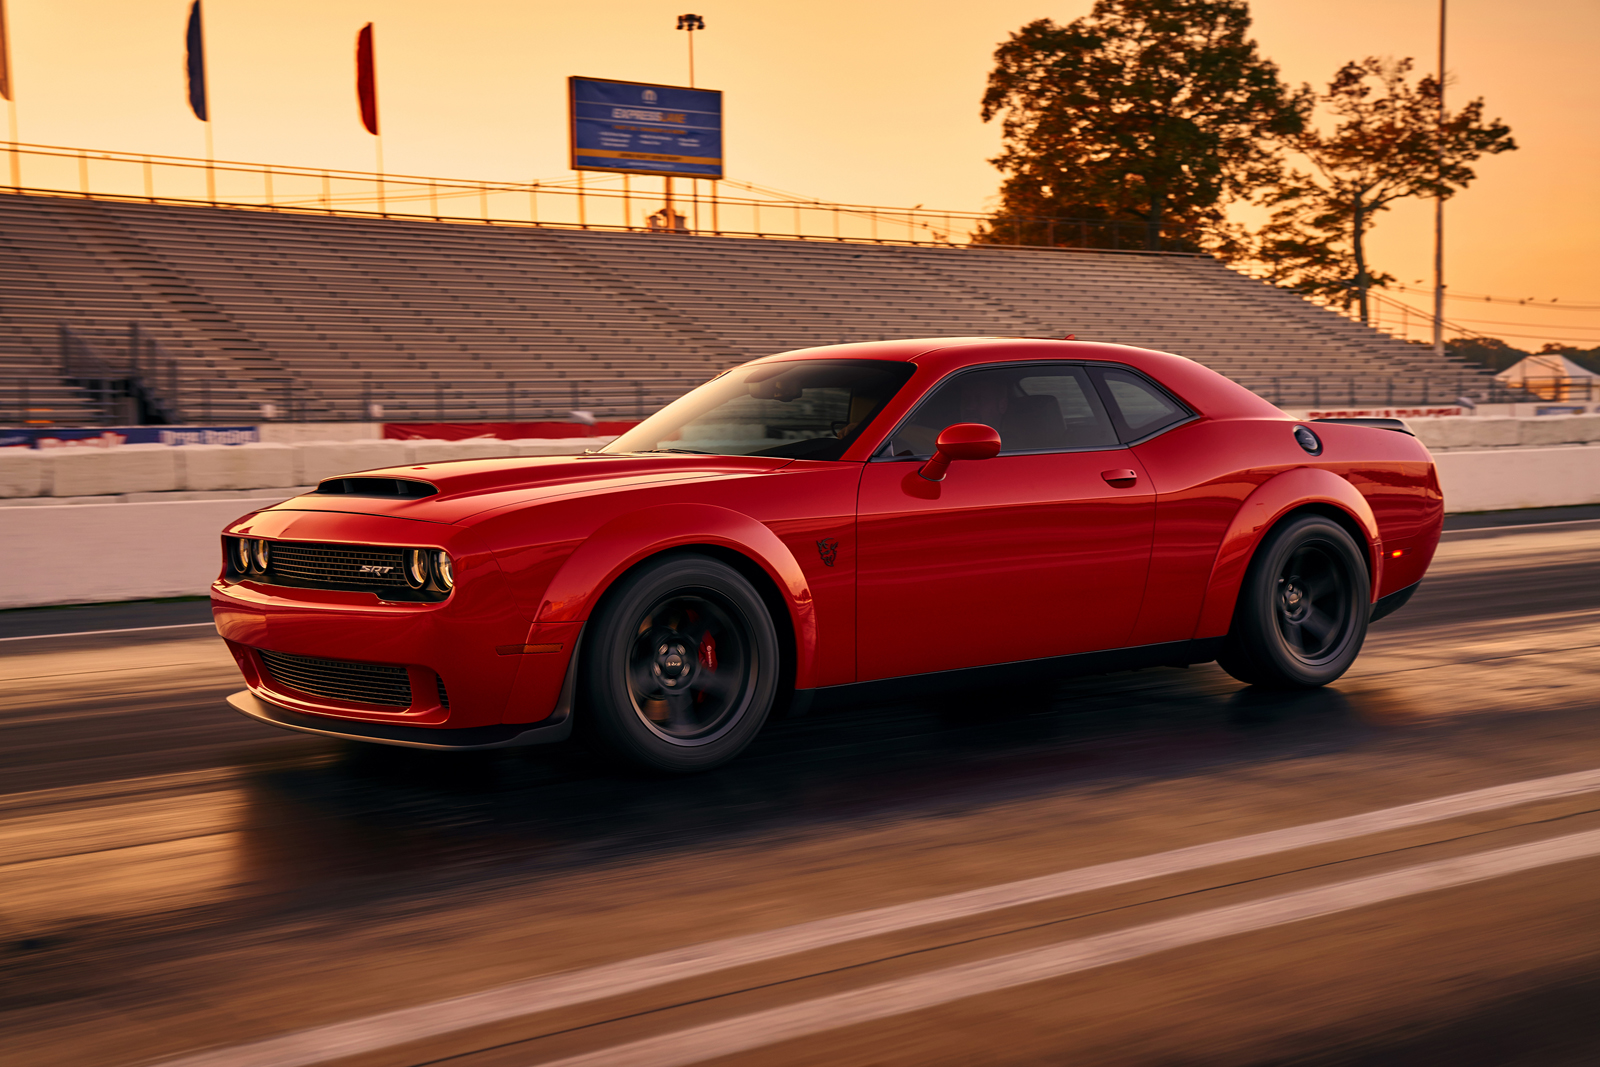 2018 Dodge Challenger Srt Demon Looks Devilish In First Official